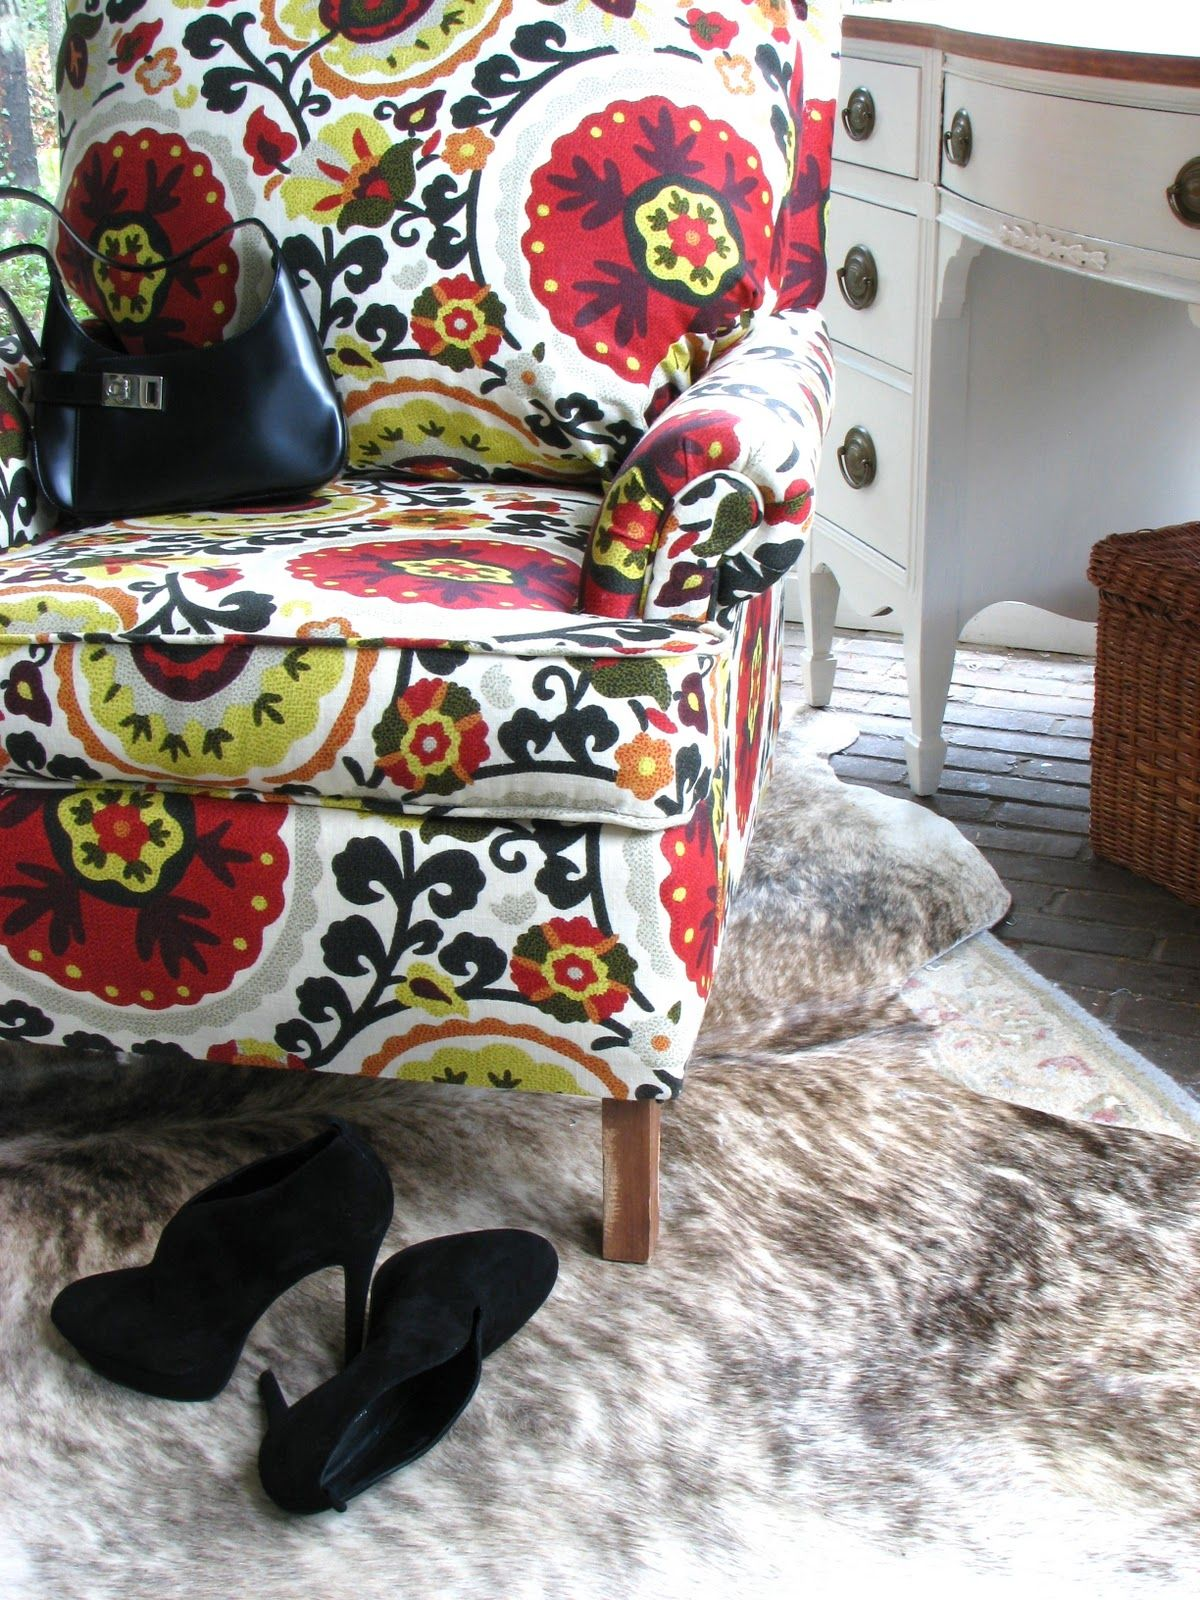 Anthropologie Inspired Upholstered Chair | Video tutorial on how to reupholster an old chair